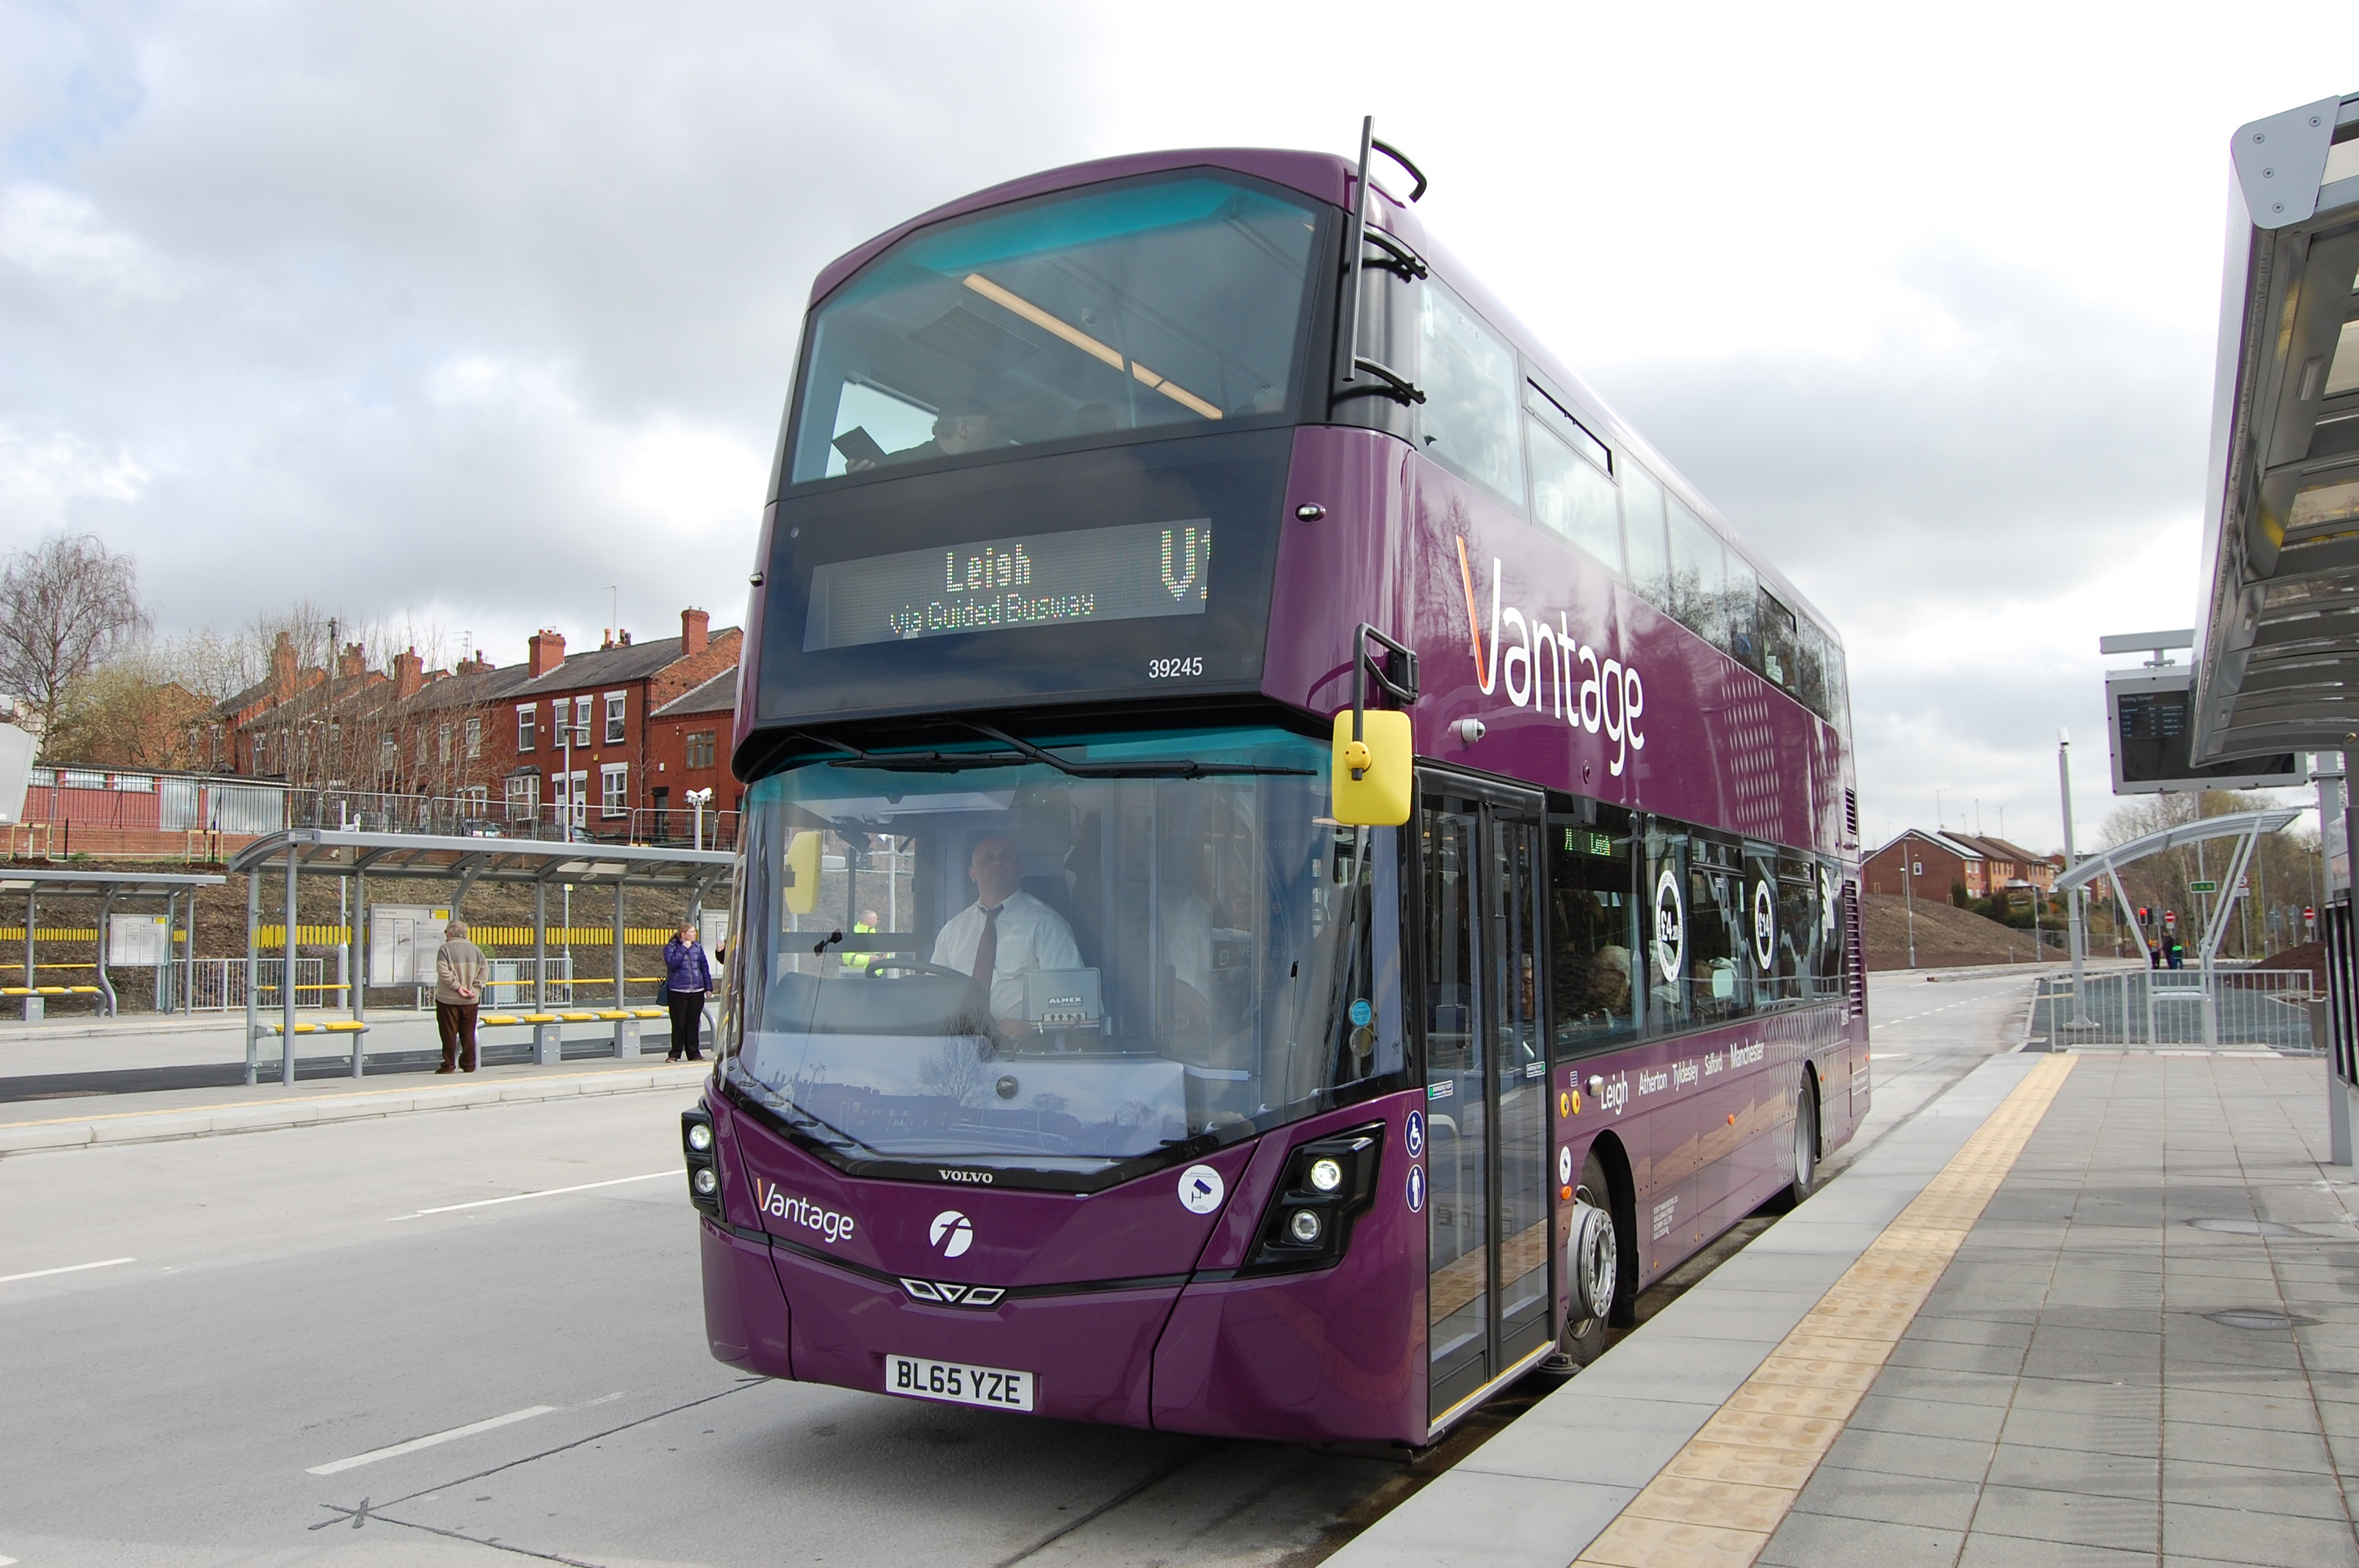 First Manchester's Vantage 39245 BL65 YZE